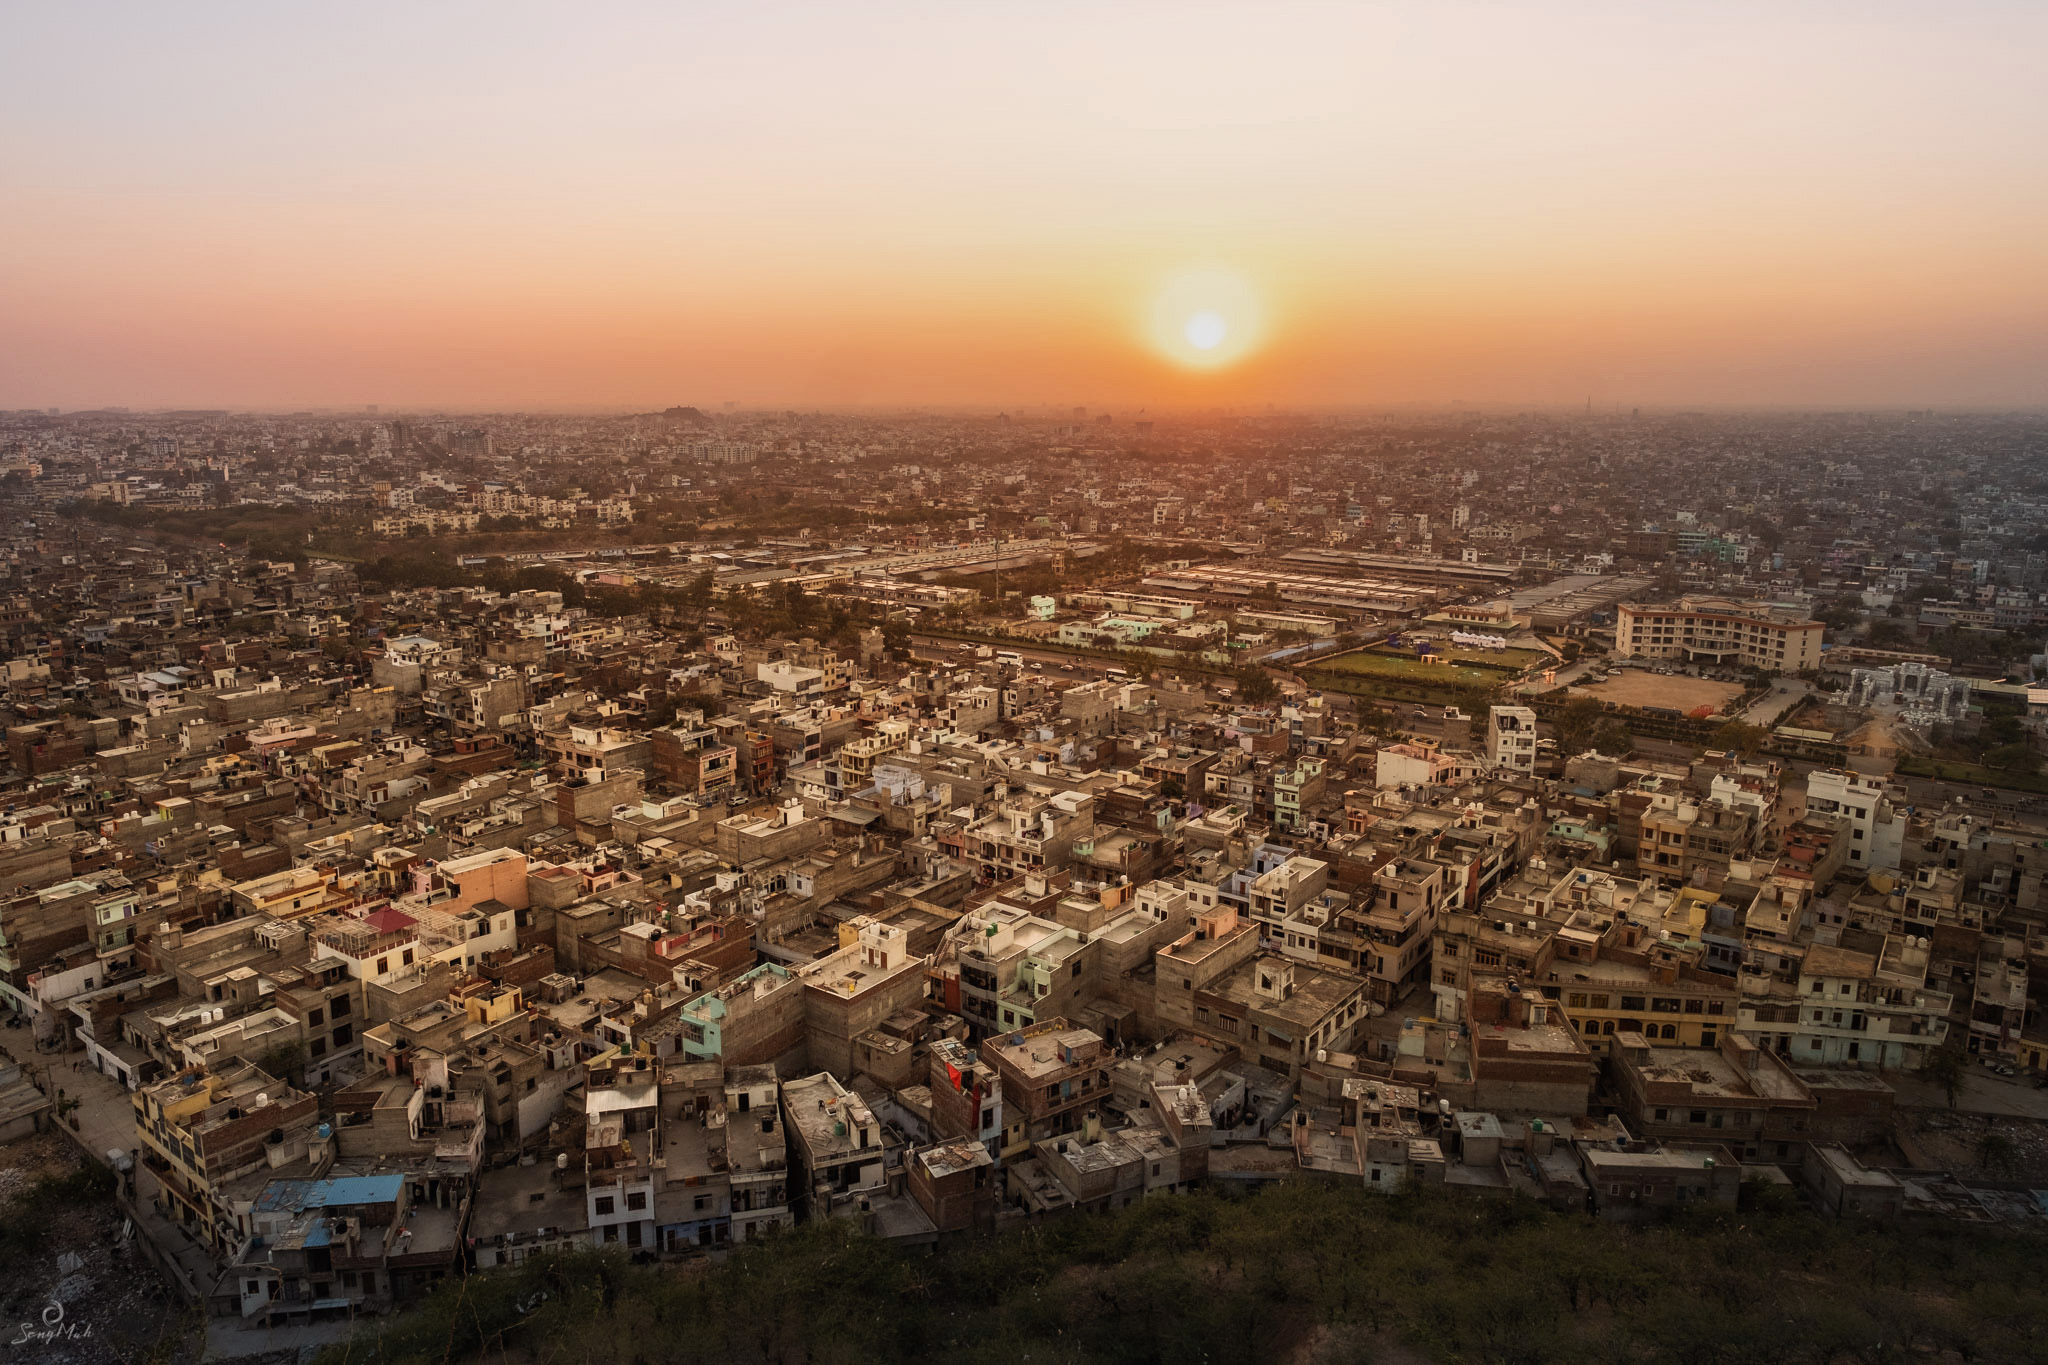 The Pink City at sunset